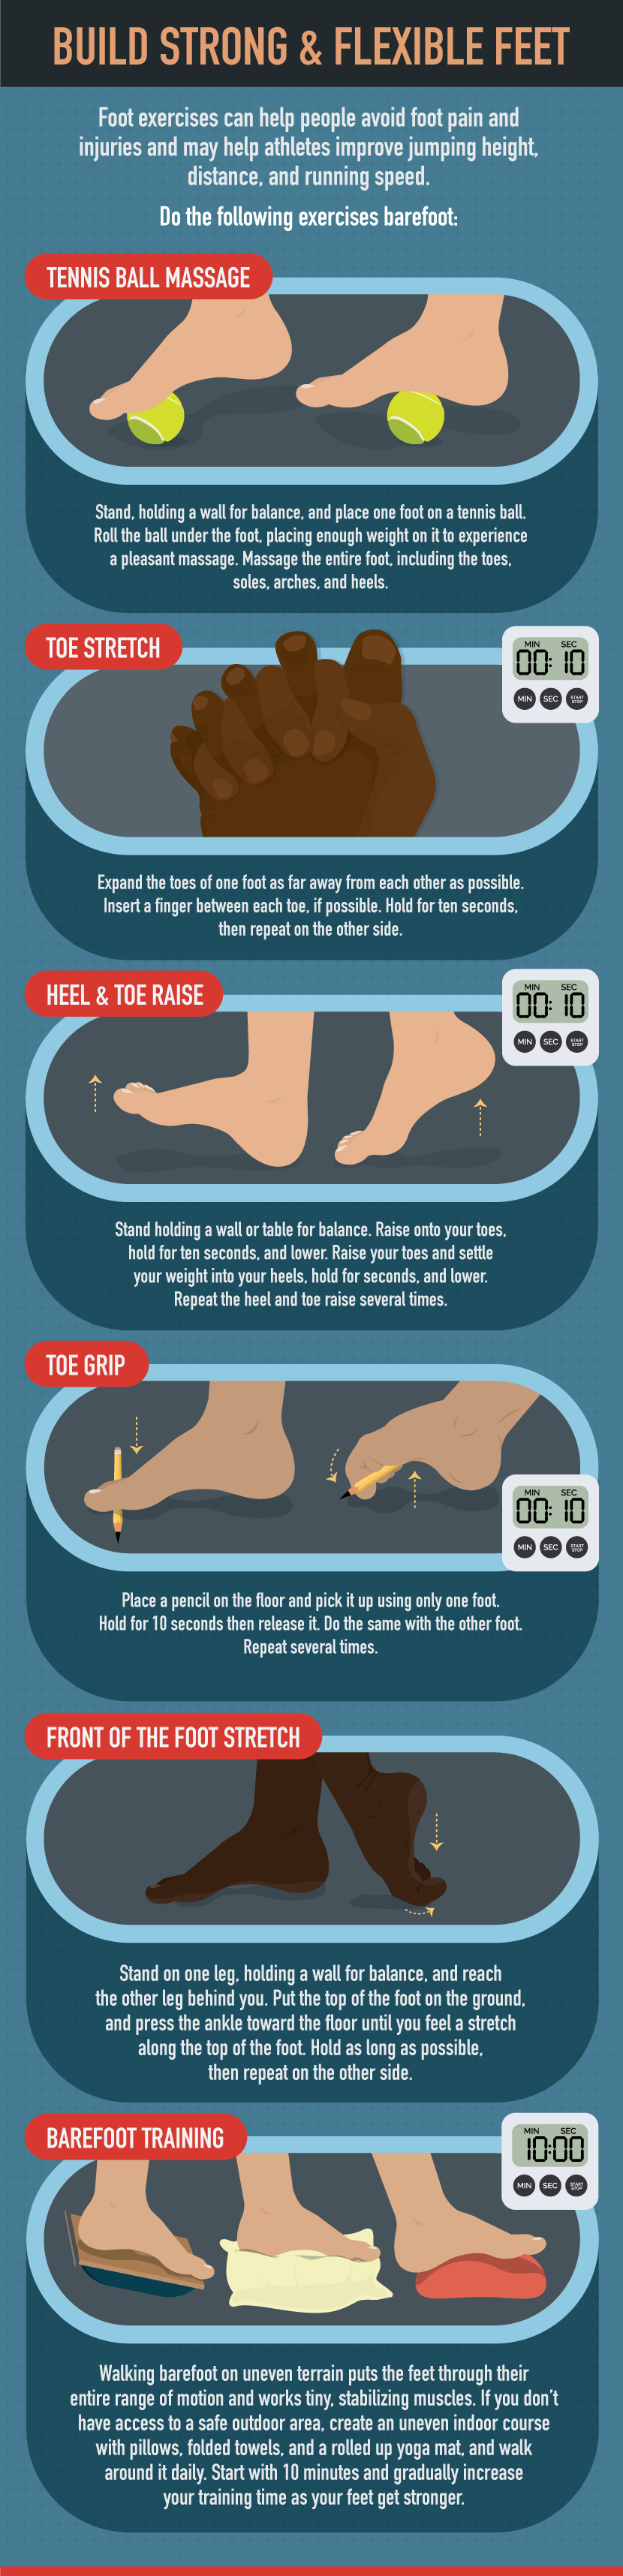 How To Maintain Healthy Feet